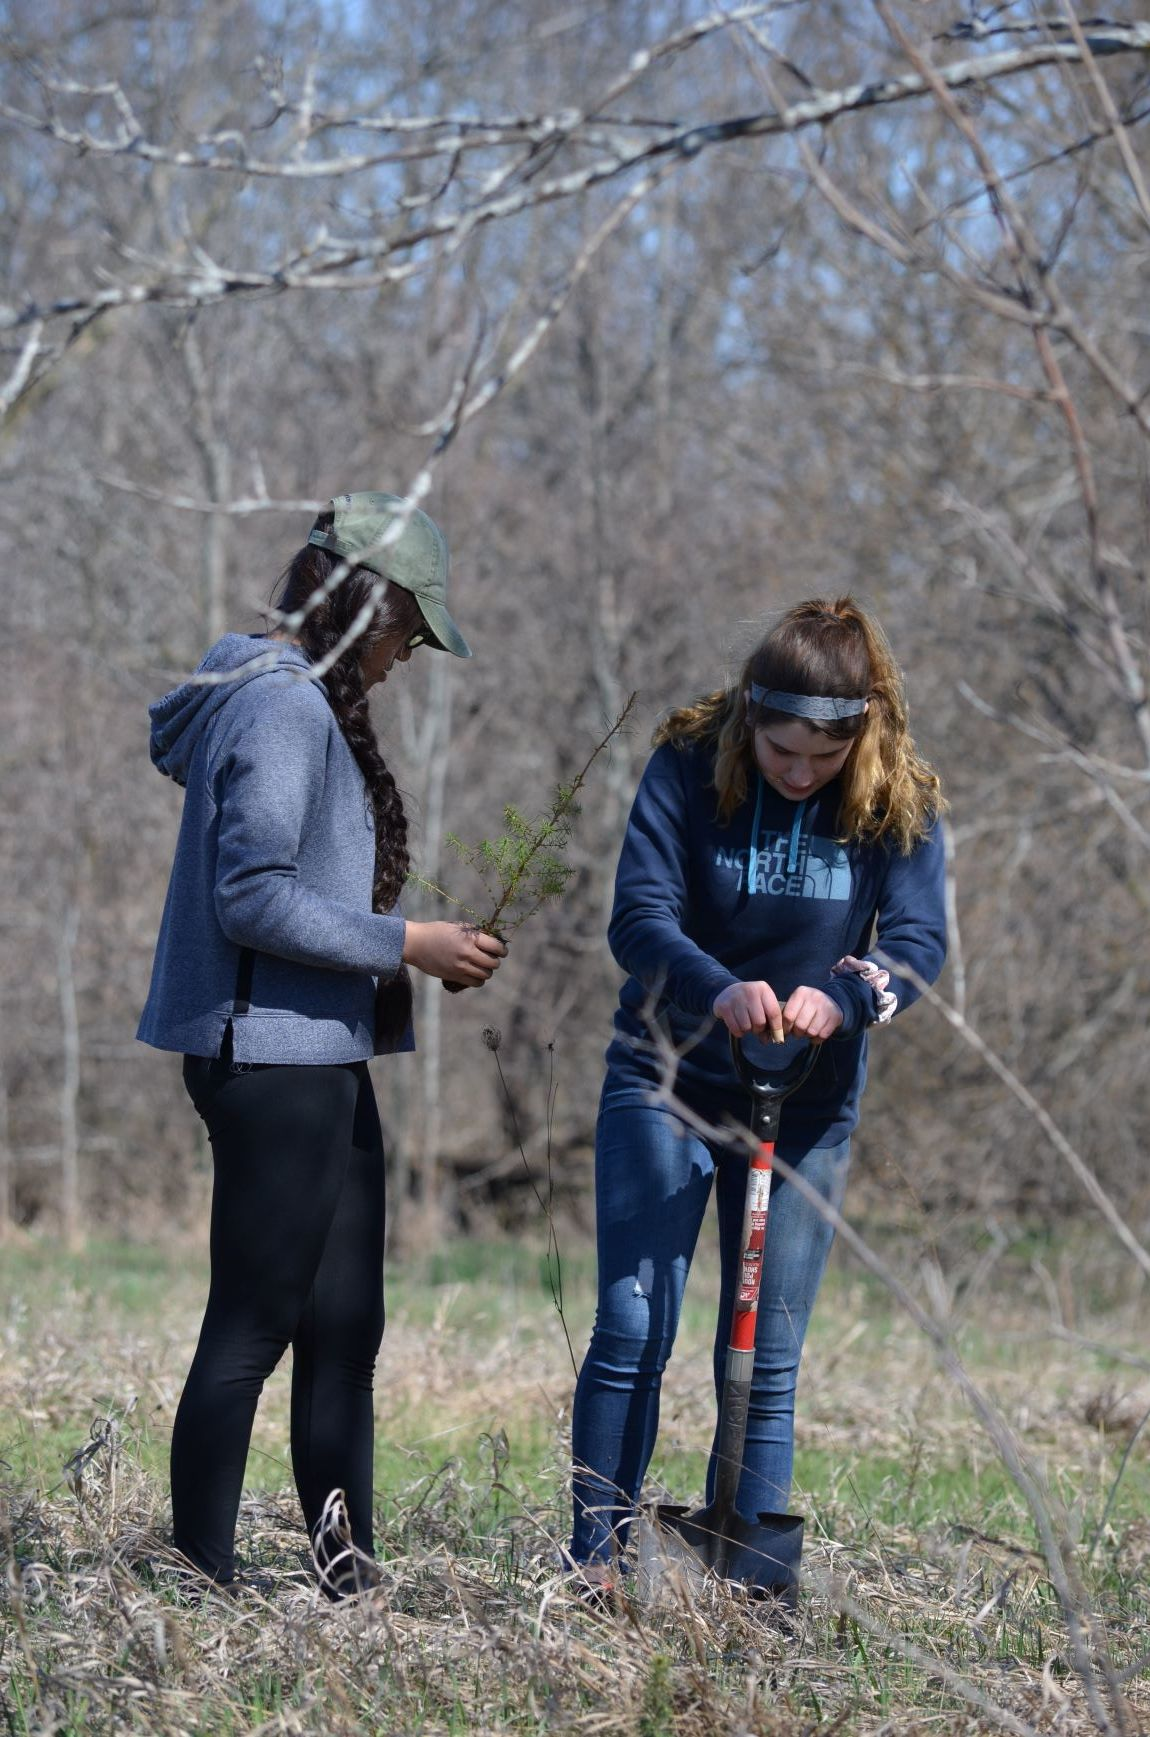 Dave Tupa's Southern Door Earth Science students plant trees in Sturgeon Bay, WI on April 26, 2019.